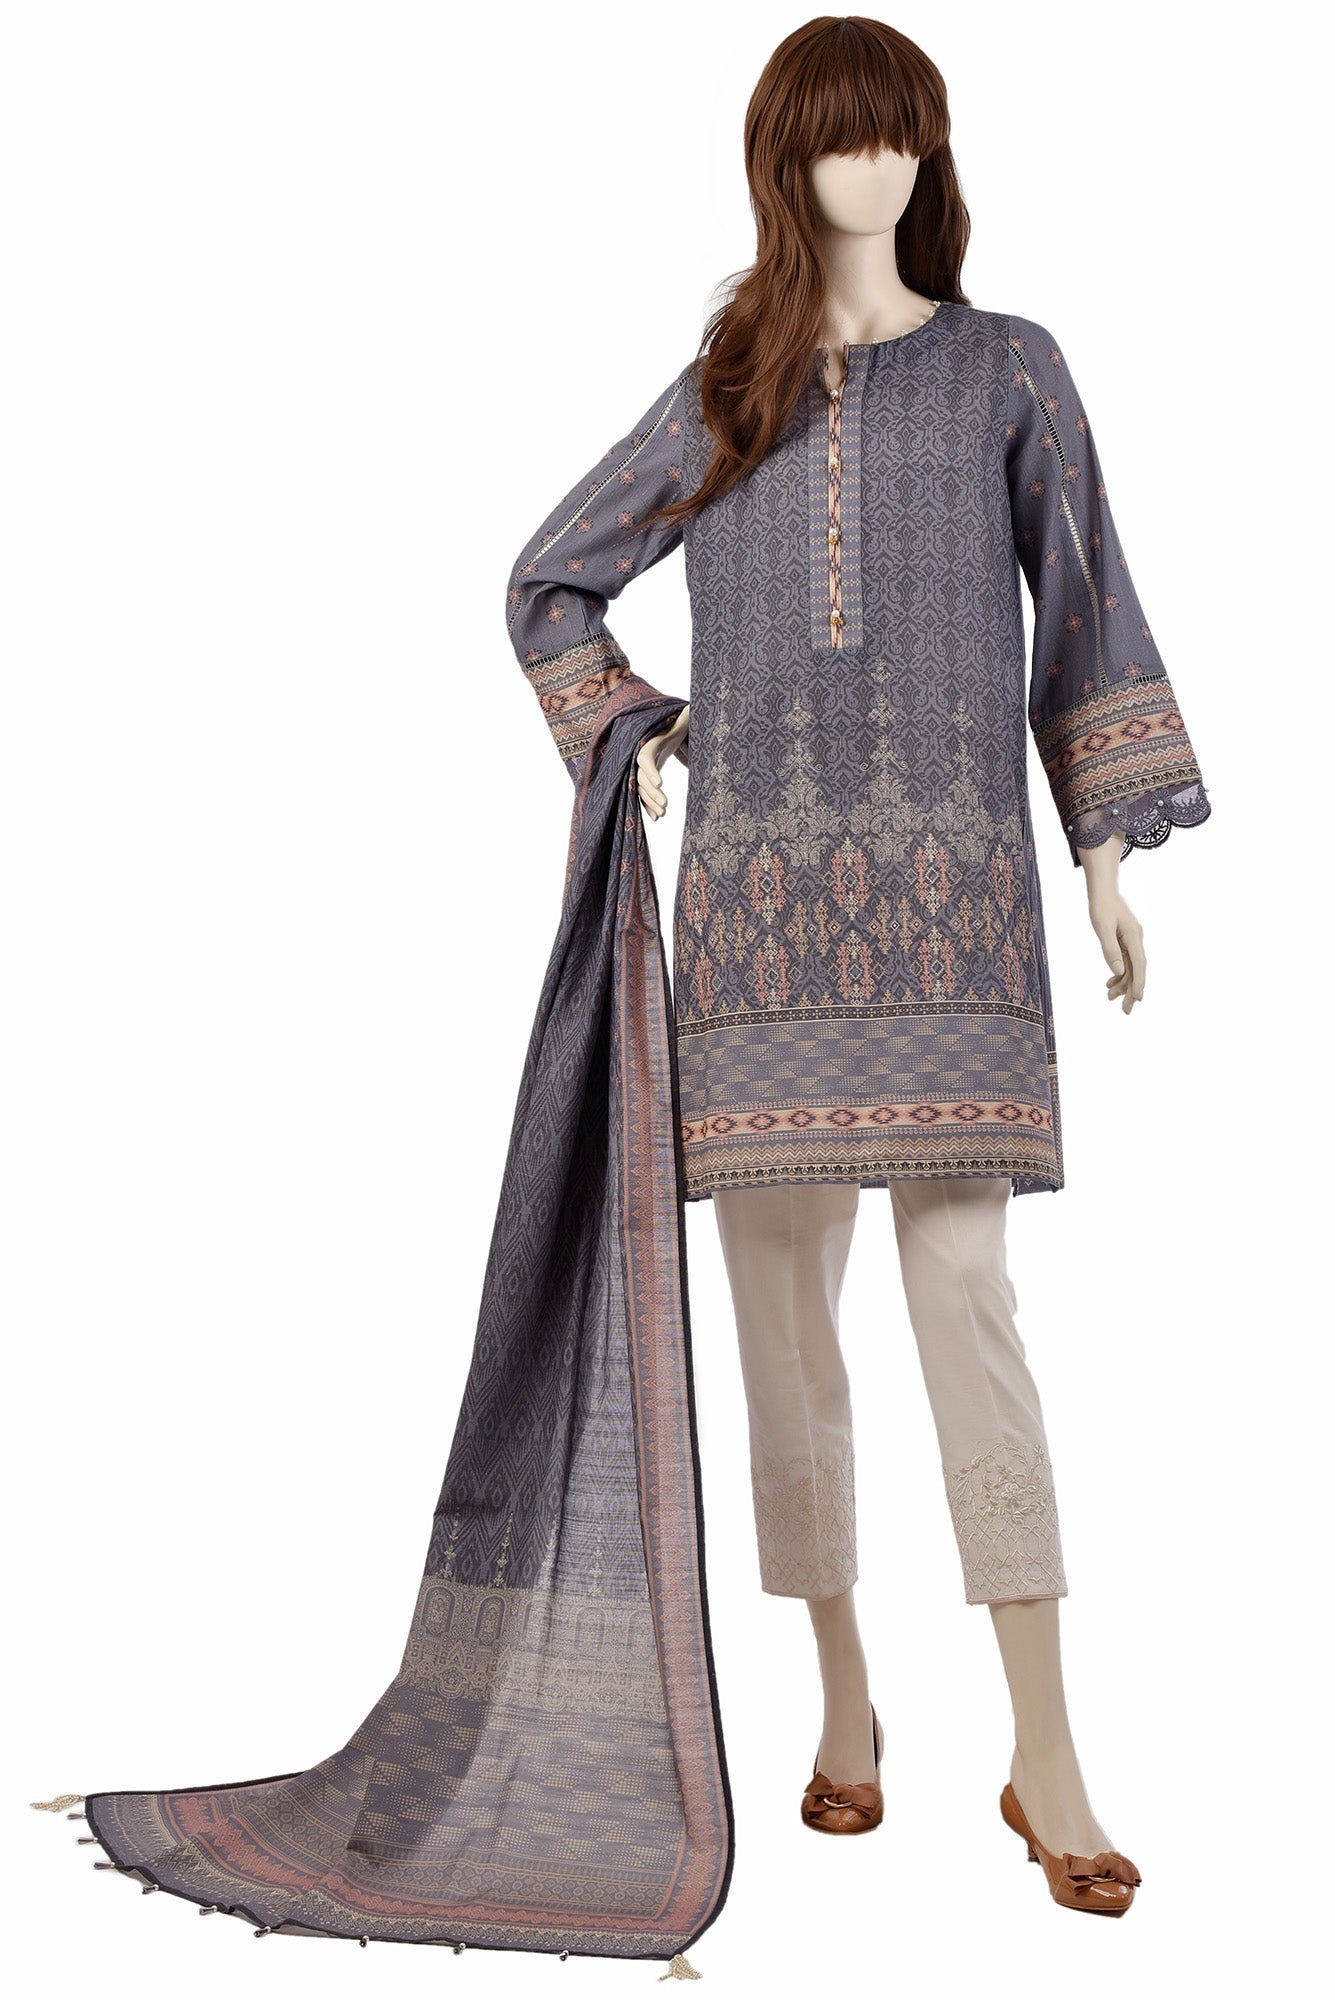 FELICITY UP-1927-6B (SHIRT/DUPATTA) - Saya